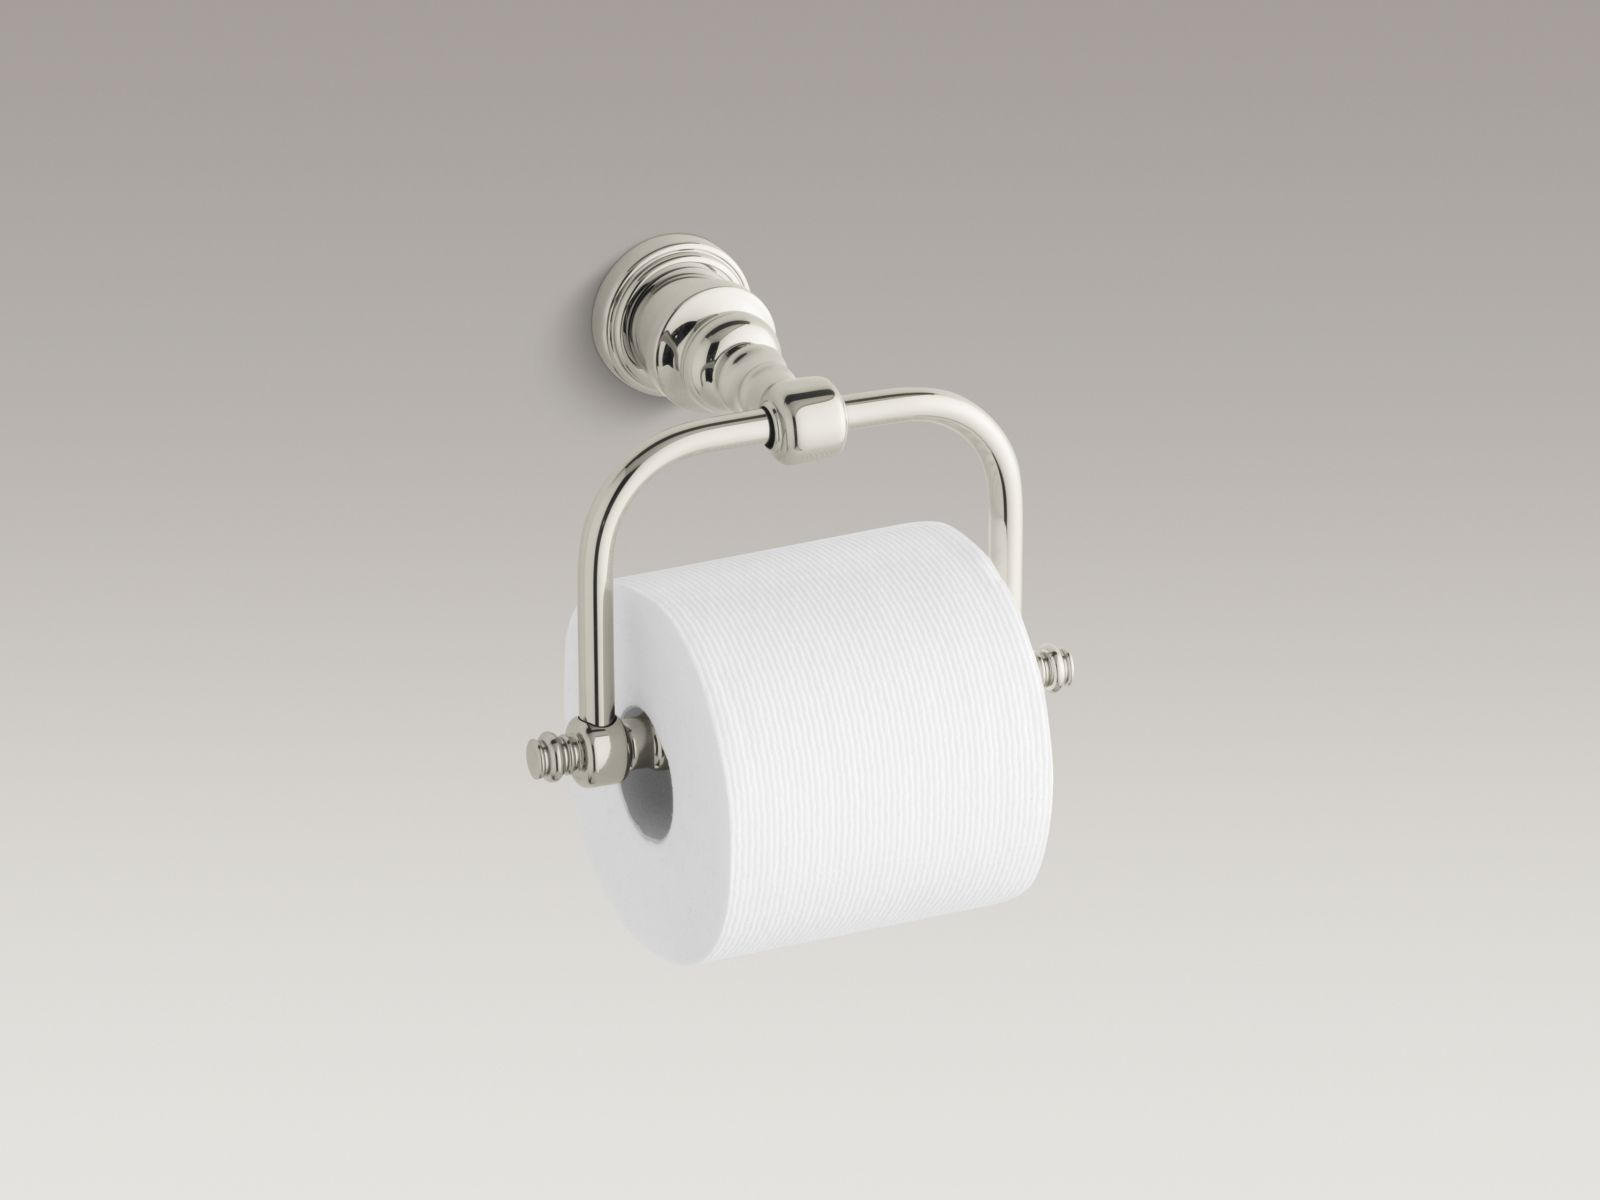 Kohler K-6828-SN IV Georges Brass Horizontal Toilet Tissue Holder Vibrant Polished Nickel